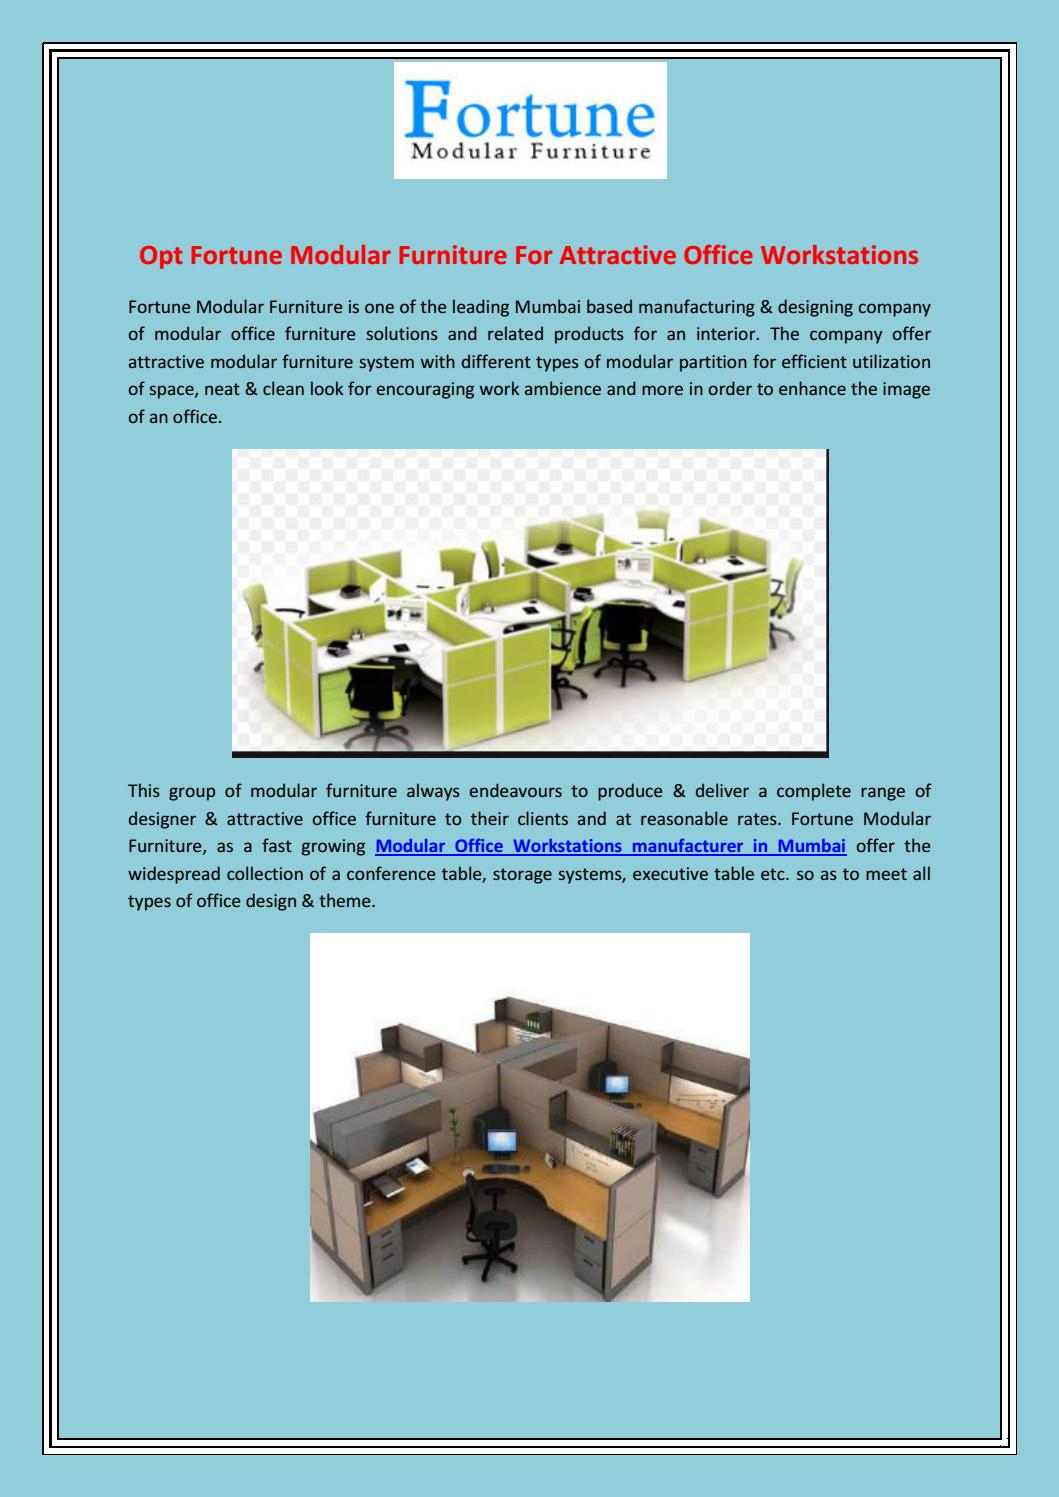 Opt Fortune Modular Furniture For Attractive Office Workstations By Fortunemodularfurniture Issuu